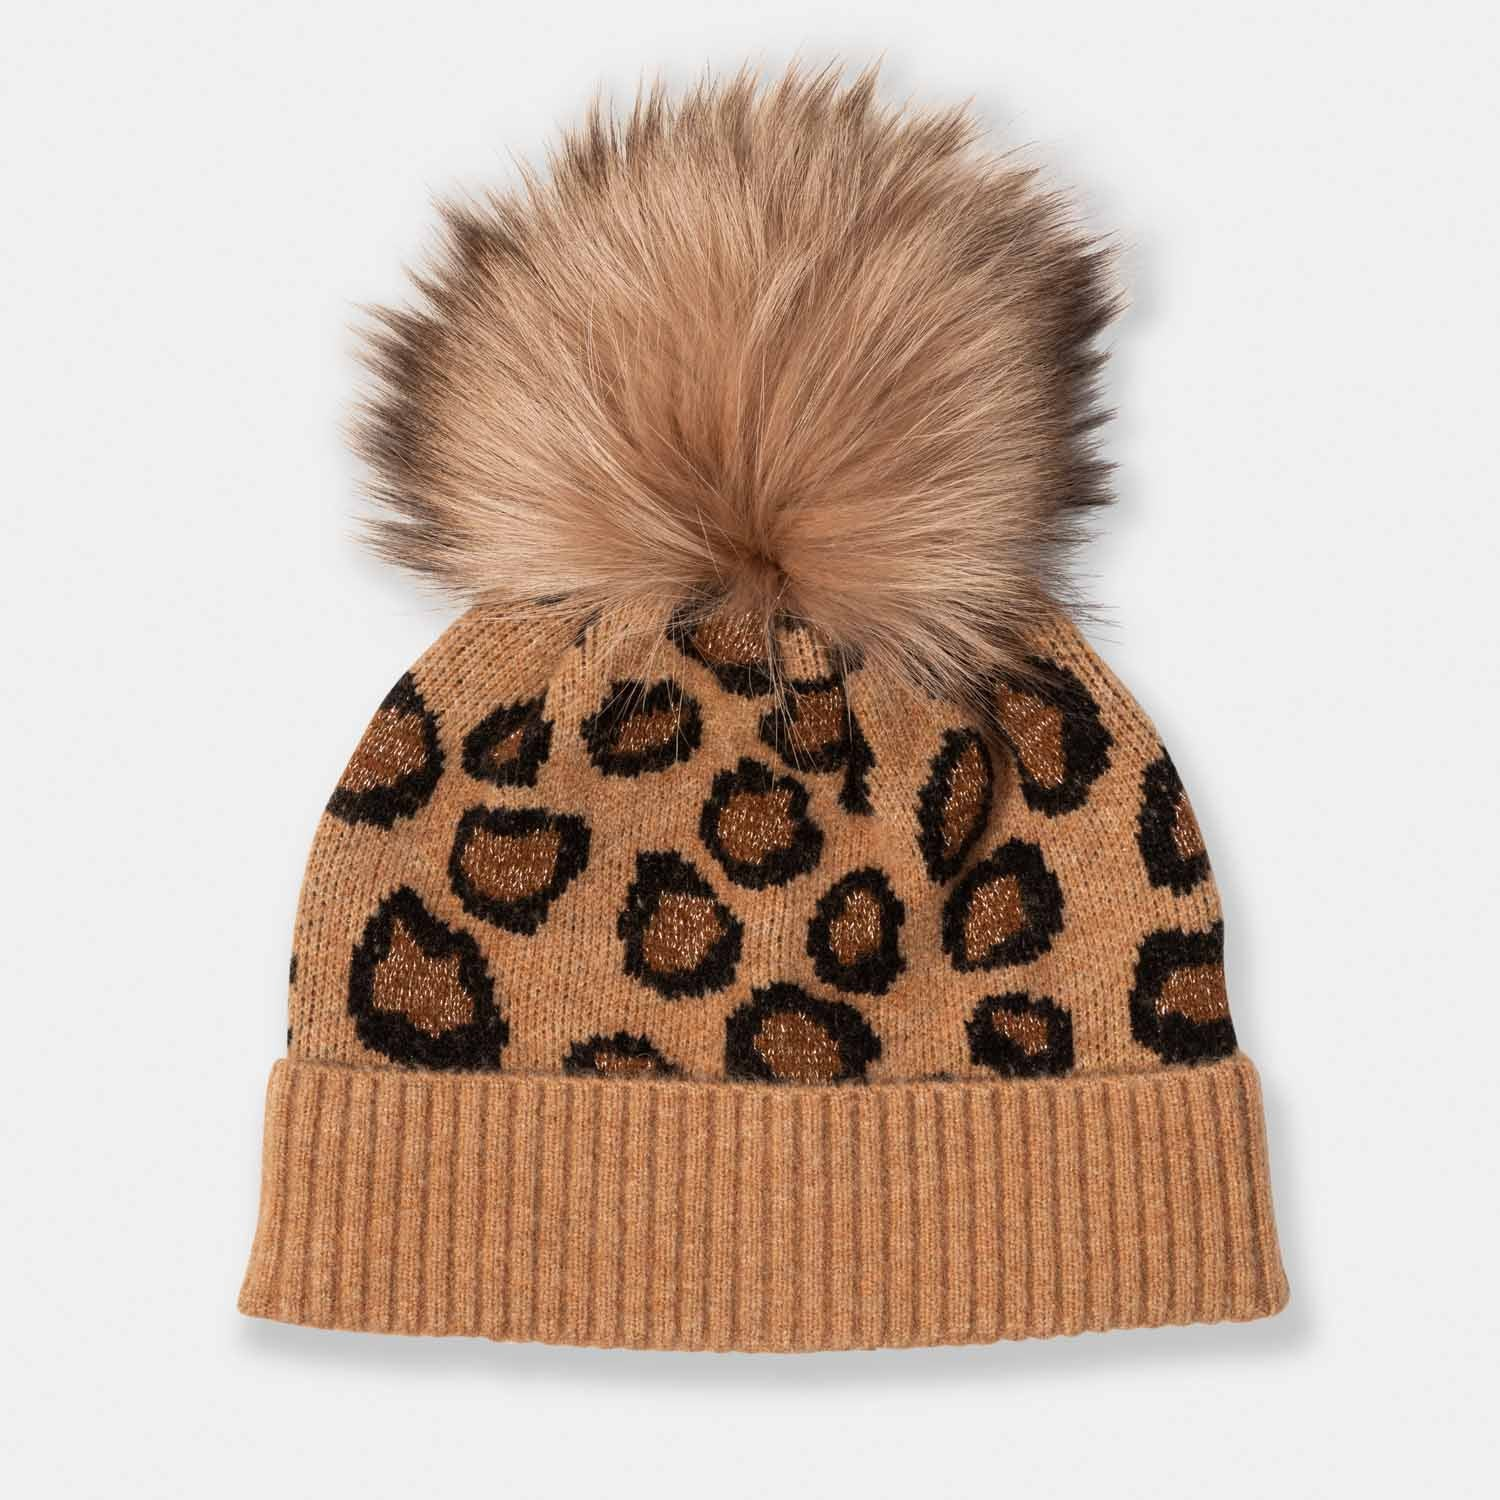 Cashmere Cheetah Print Hat with Fox Pom Pom-Amicale Cashmere